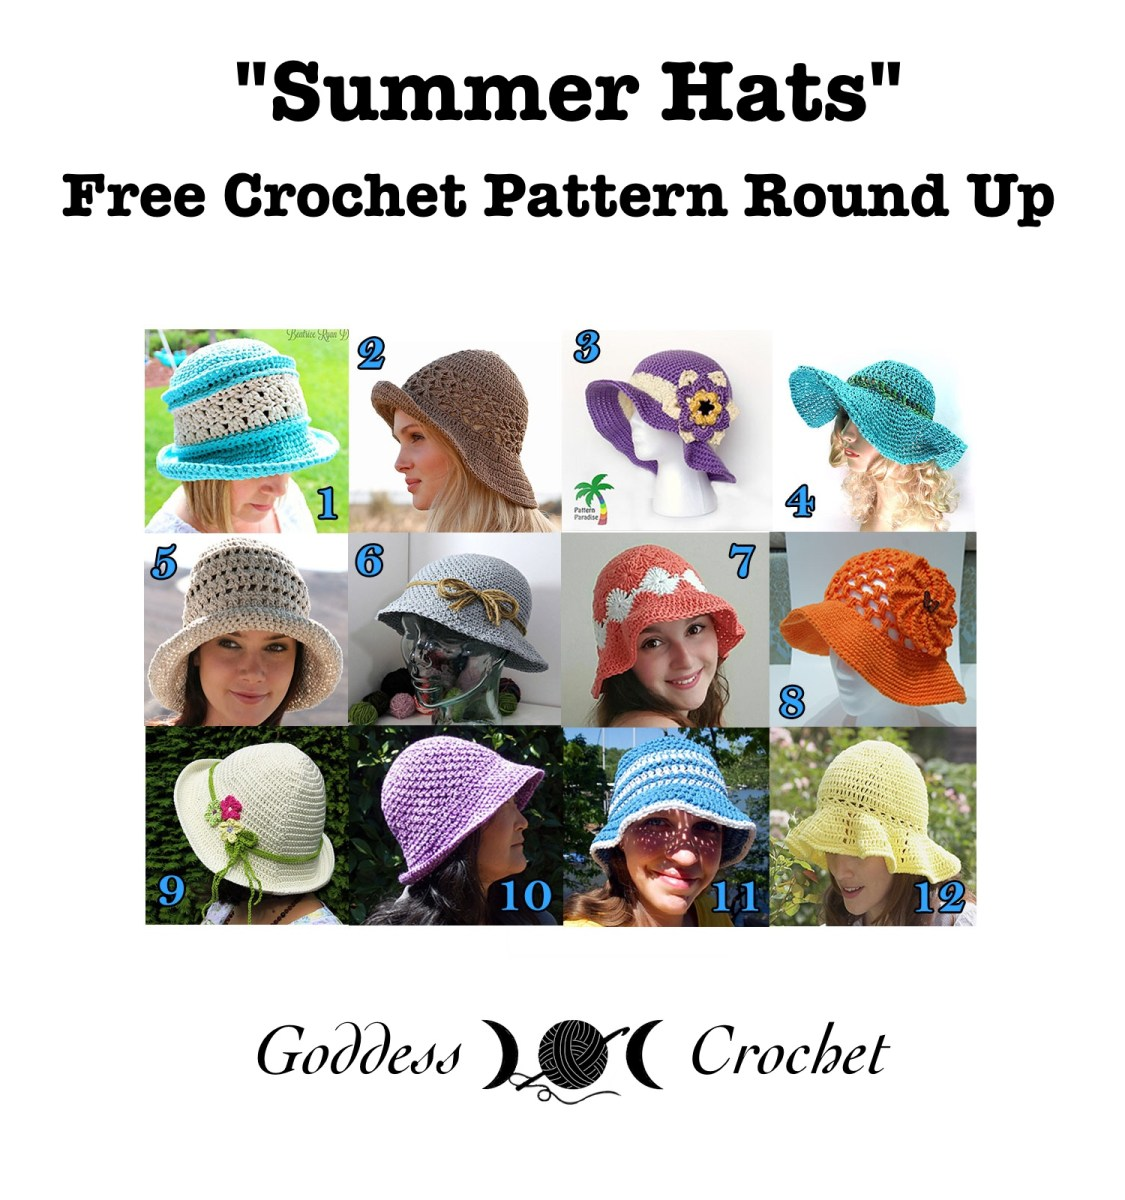 Summer Hats Free Crochet Pattern Round Up Goddess Crochet